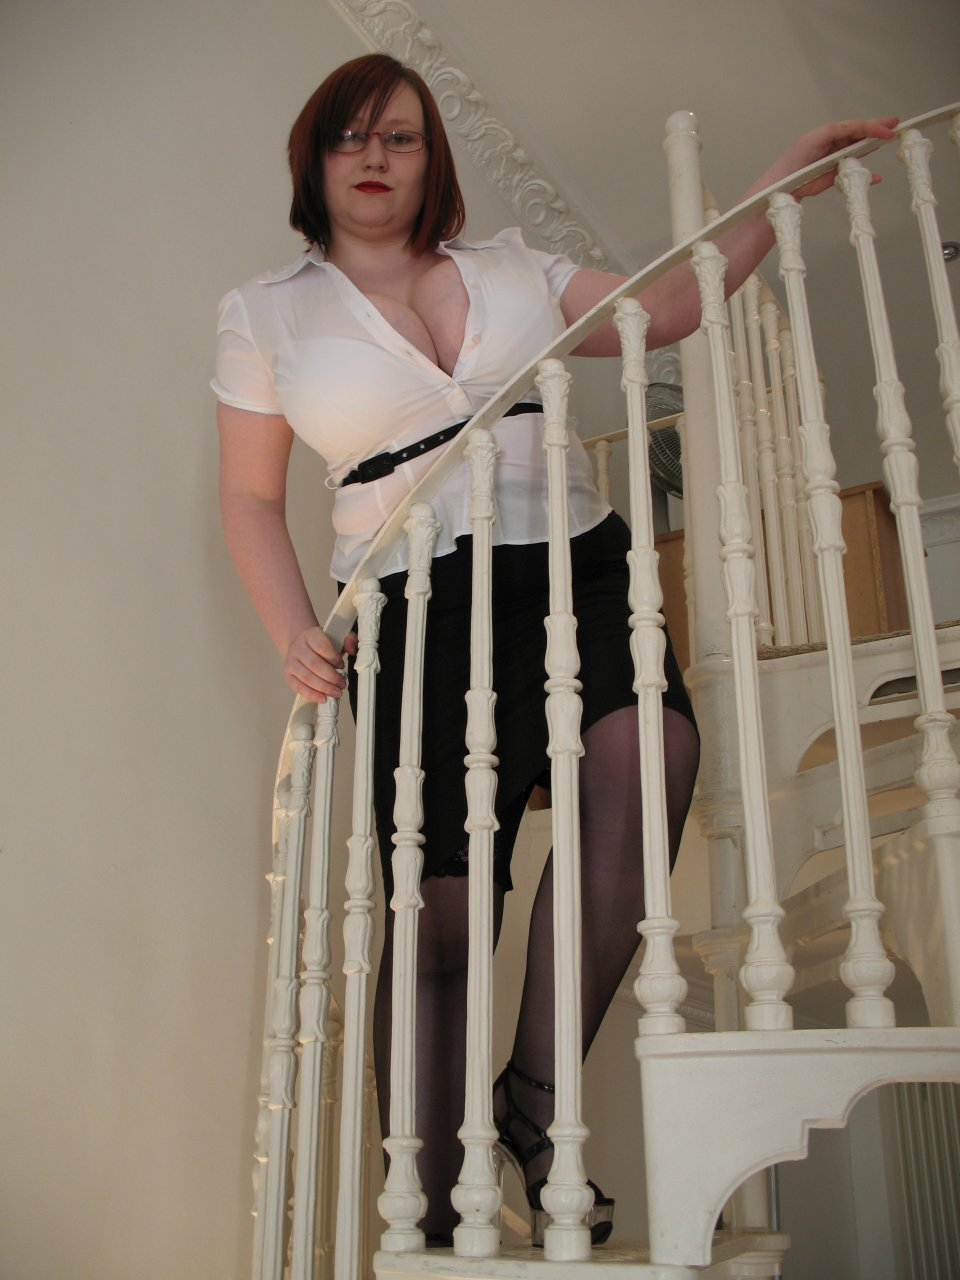 What words... milf mature adult glamour model hire that interfere, but, opinion